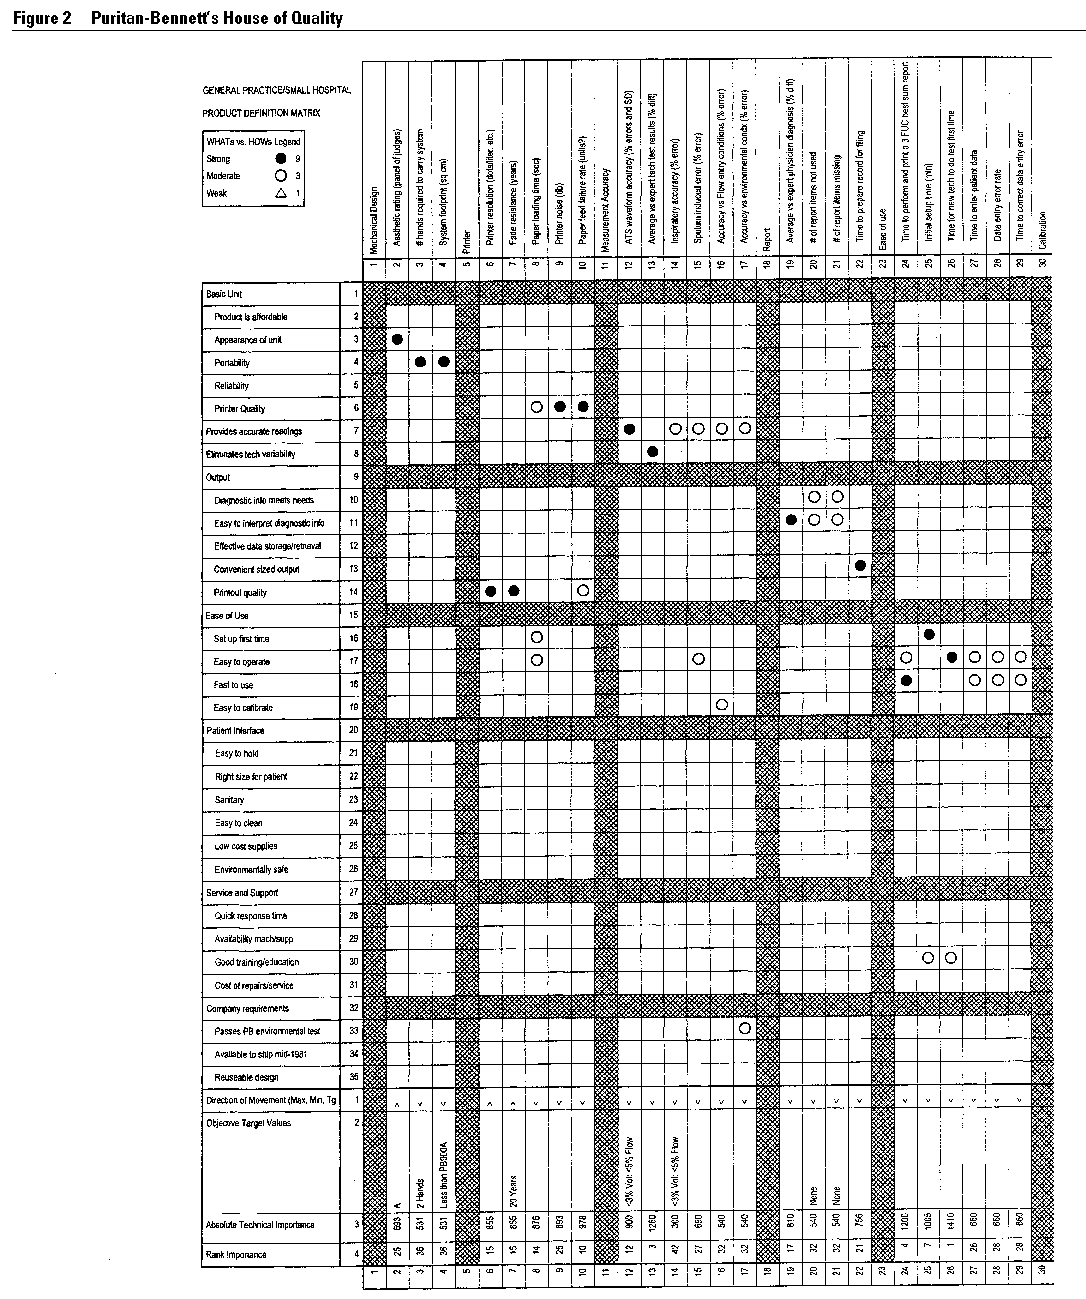 house of quality in figure 2